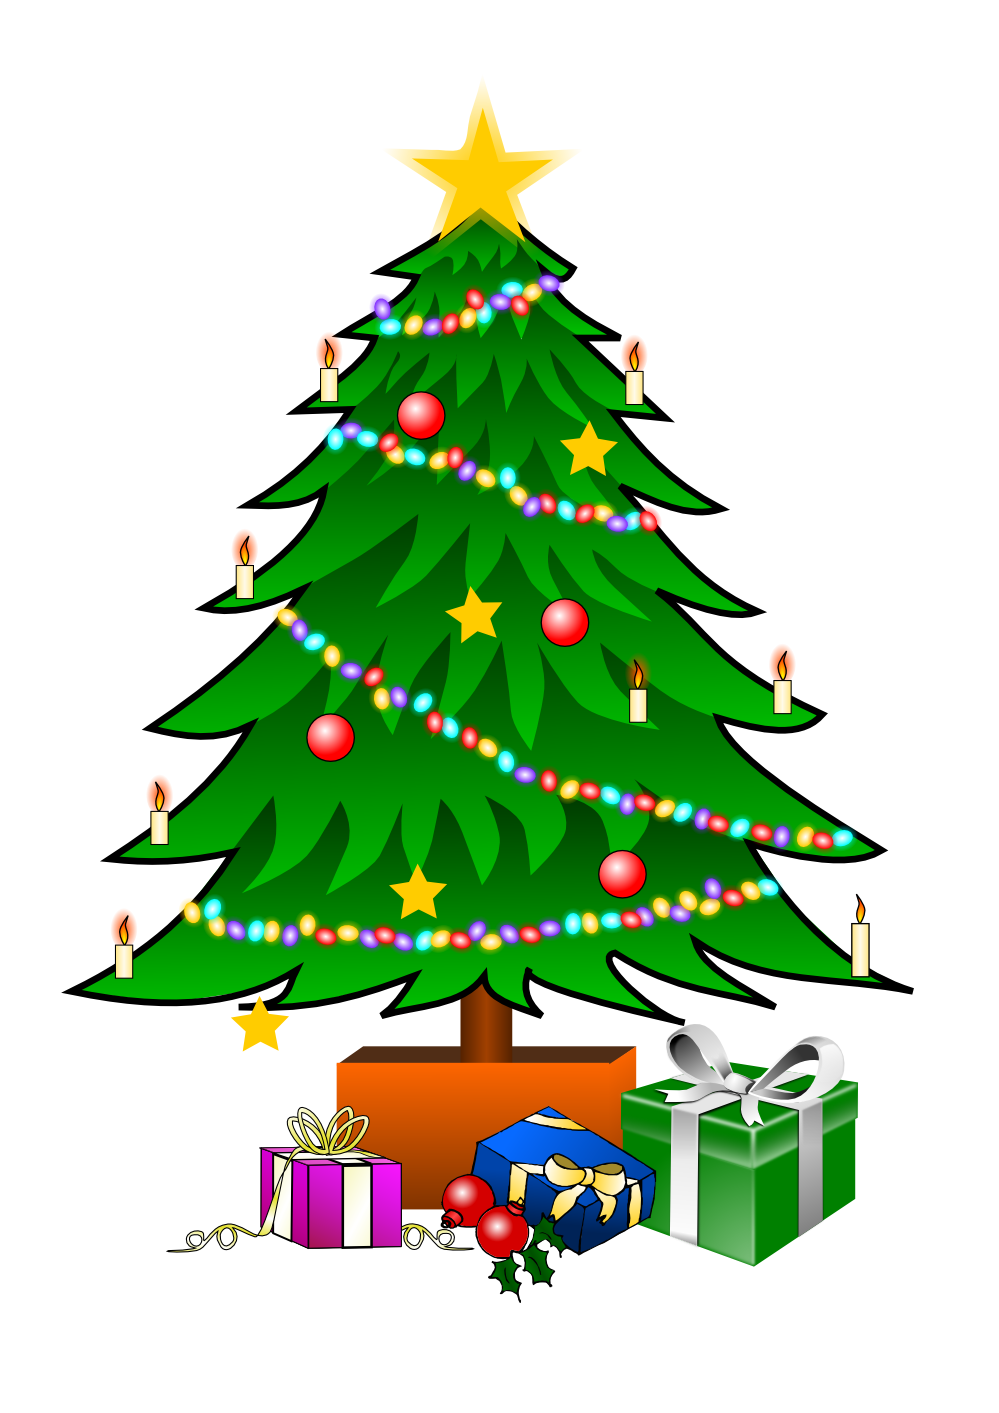 Christmas crown clipart banner library download This nice Christmas tree with presents clip art can be used for ... banner library download